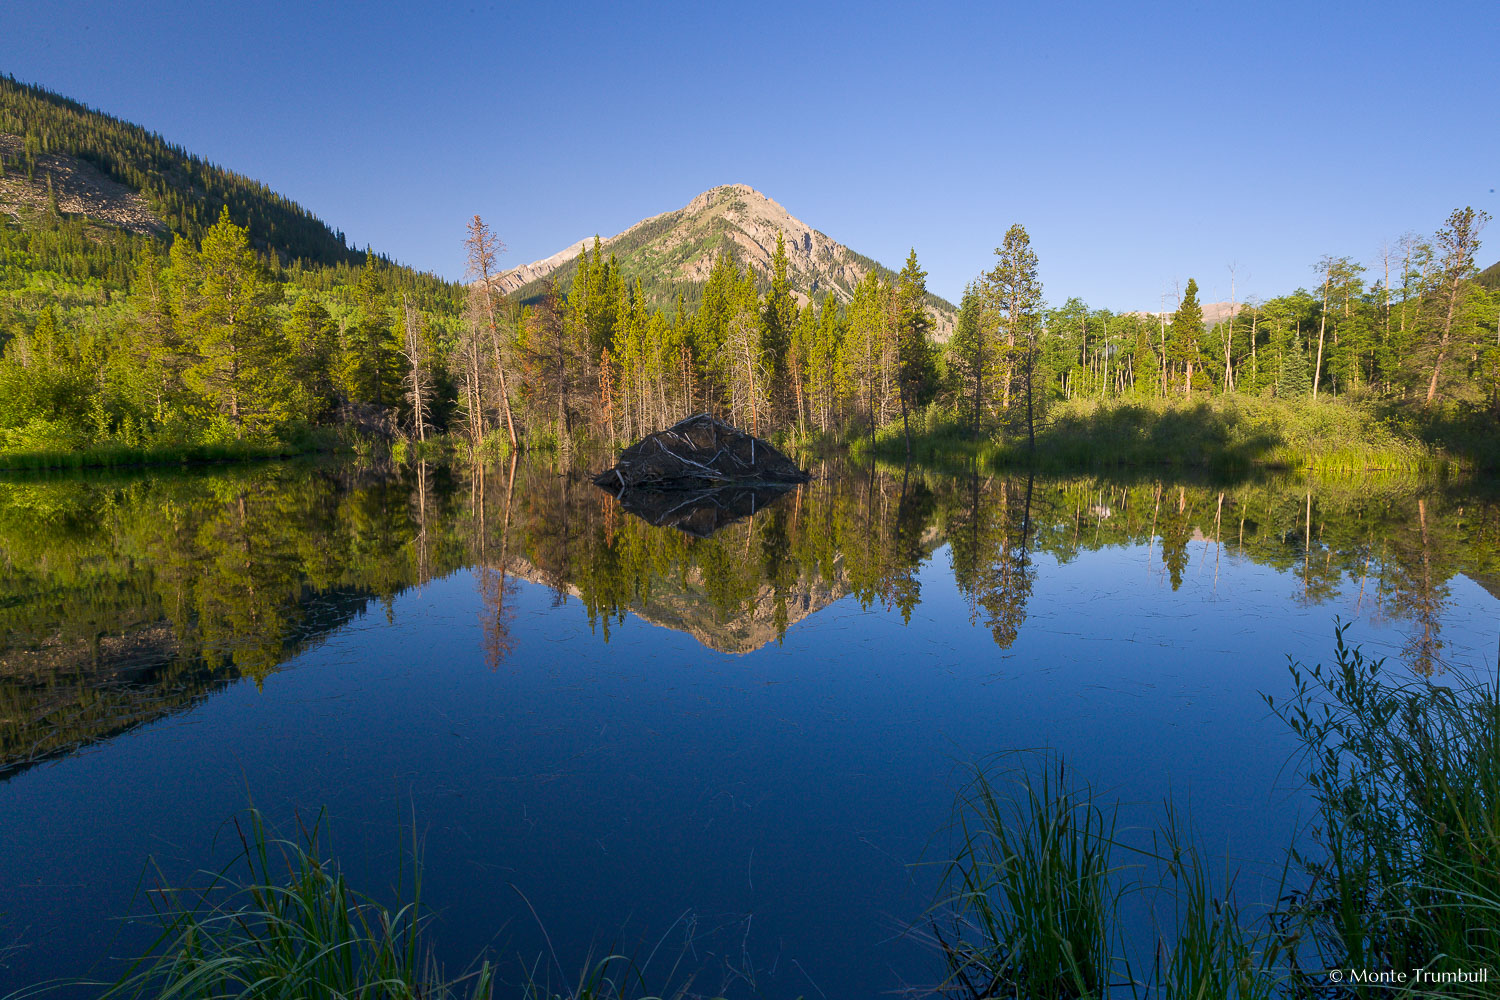 MT-20080716-065950-0011-Colorado-Clear-Creek-Canyon-beaver-pond-reflection-sunrise.jpg